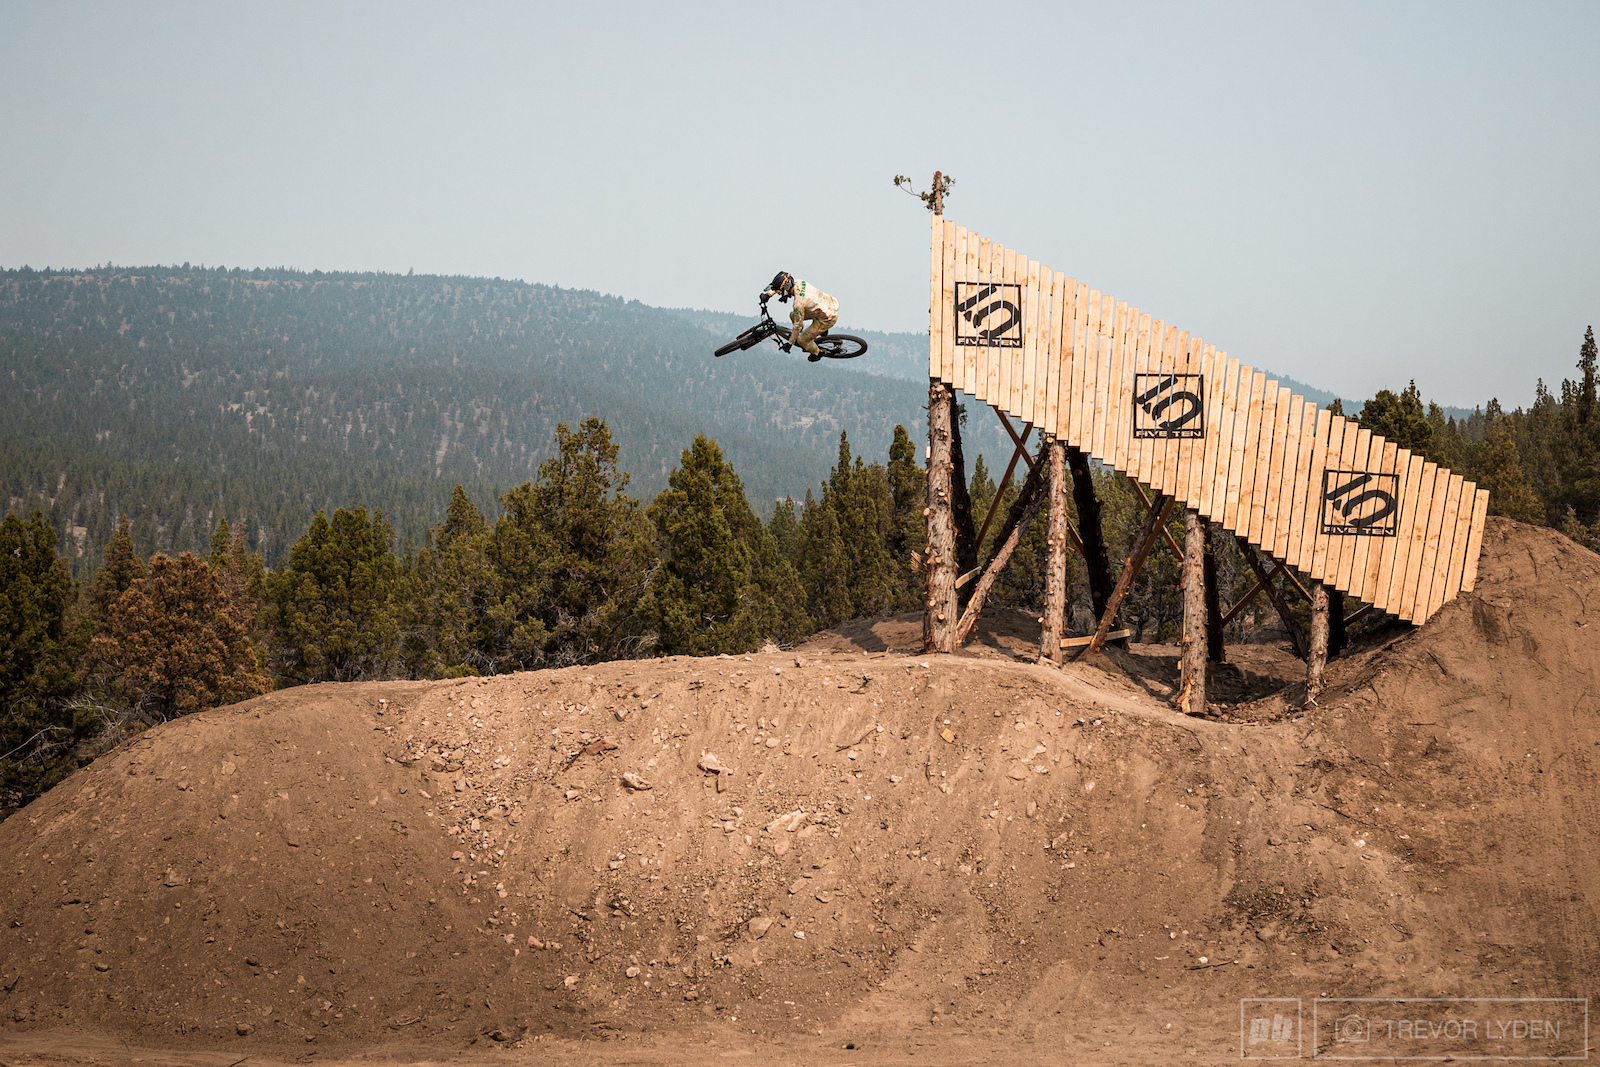 BMX crossover Dylan Stark was the first rider brave enough to send the Five Ten mega shark fin.